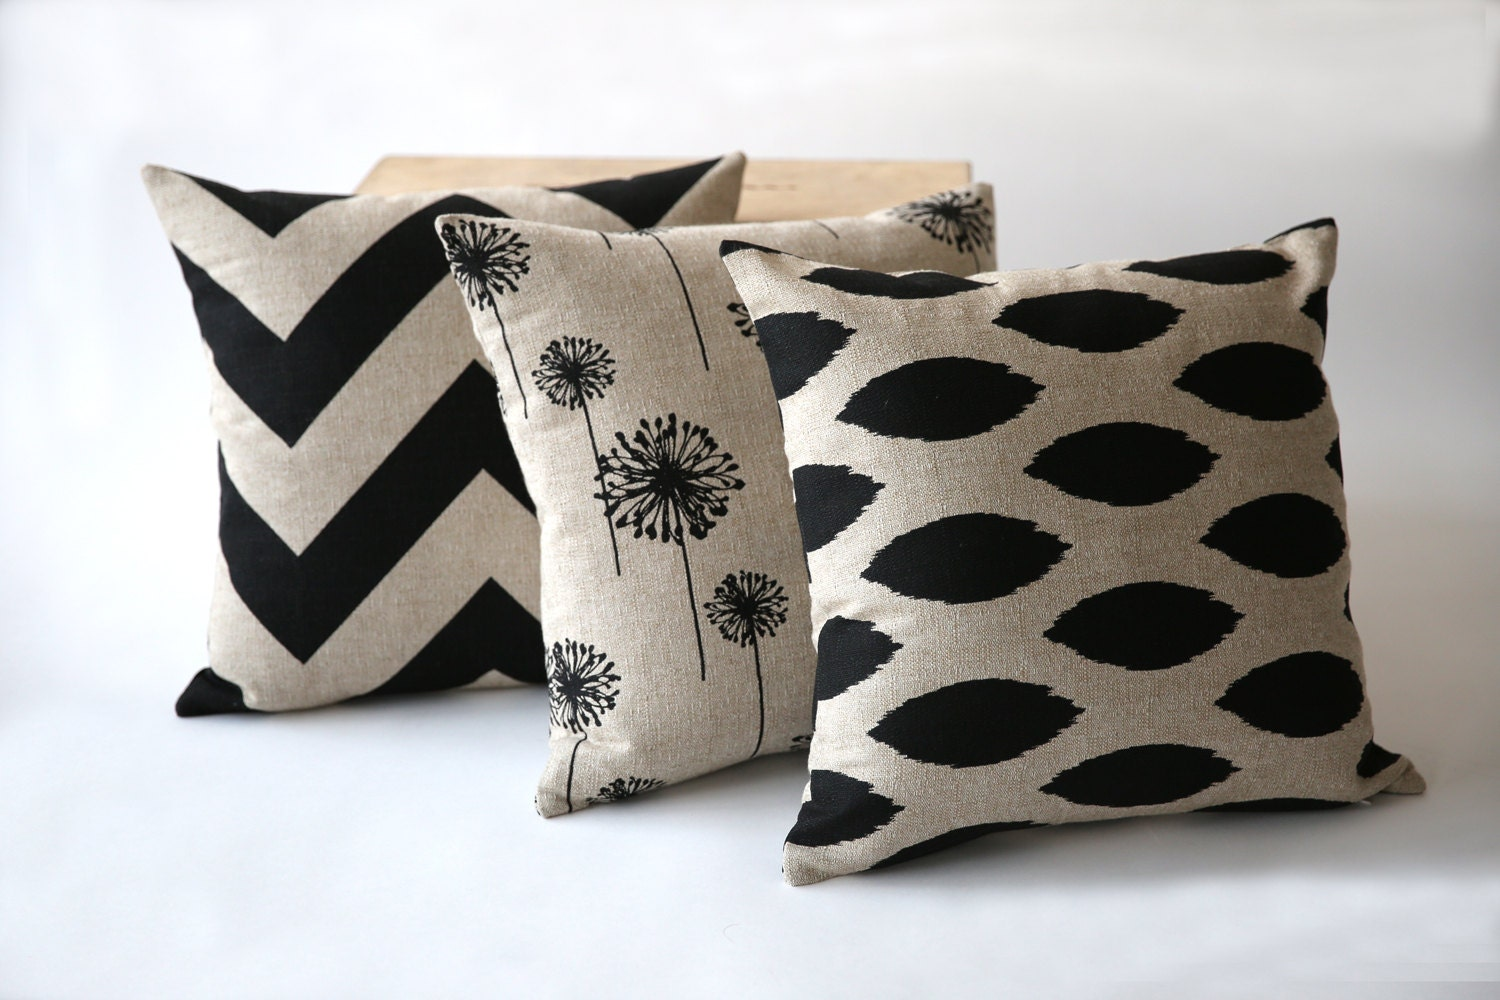 How To Make Zippered Throw Pillow Covers : One Decorative Throw Zipper Pillow Cover in Black on by Pillomatic